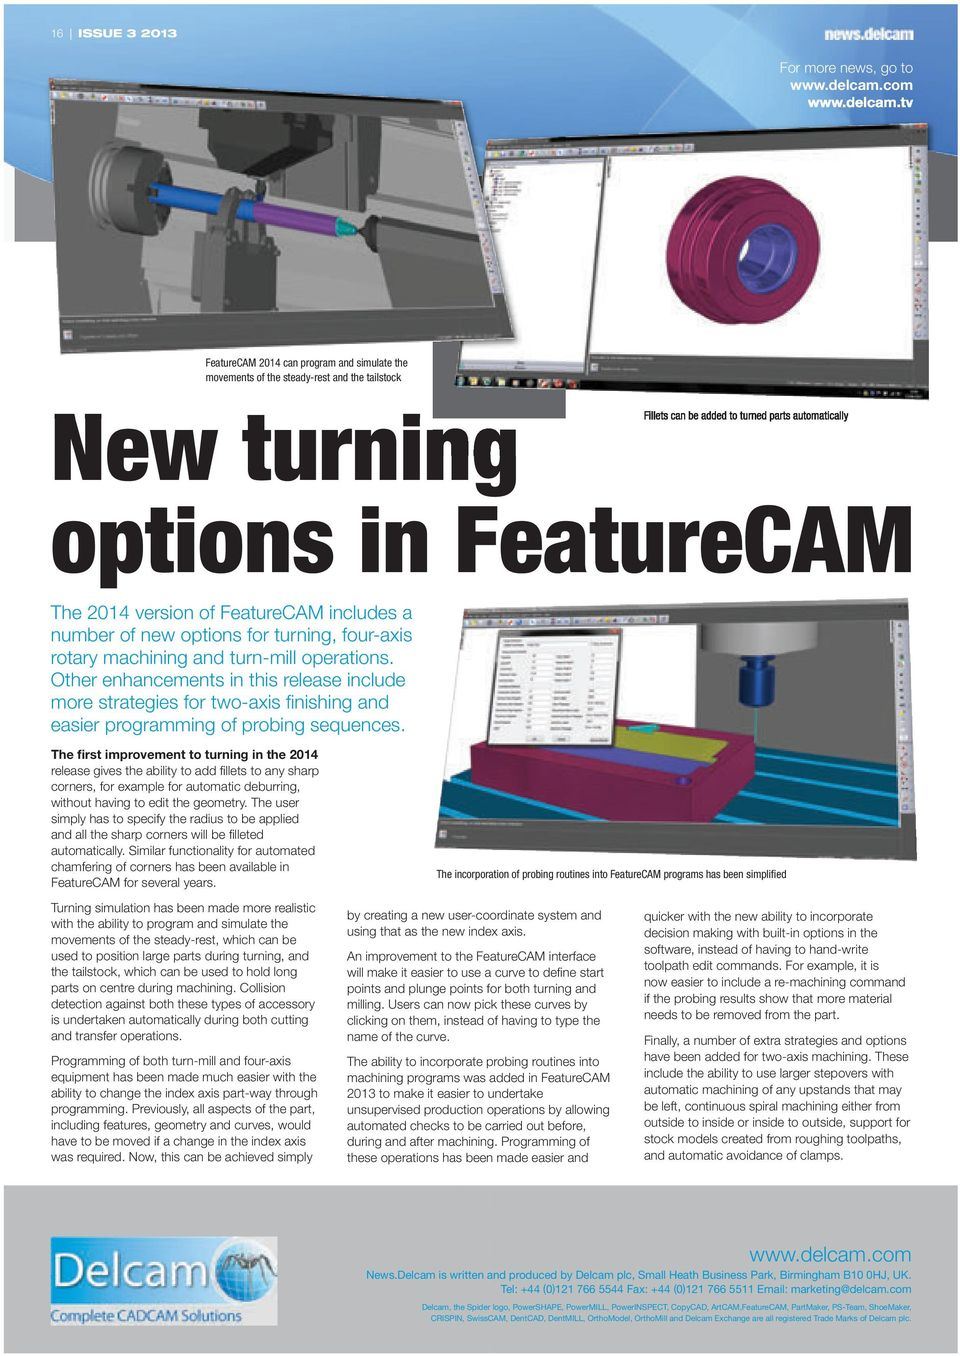 tv FeatureCAM 2014 can program and simulate the movements of the steady-rest and the tailstock New turning Fillets can be added to turned parts automatically options in FeatureCAM The 2014 version of